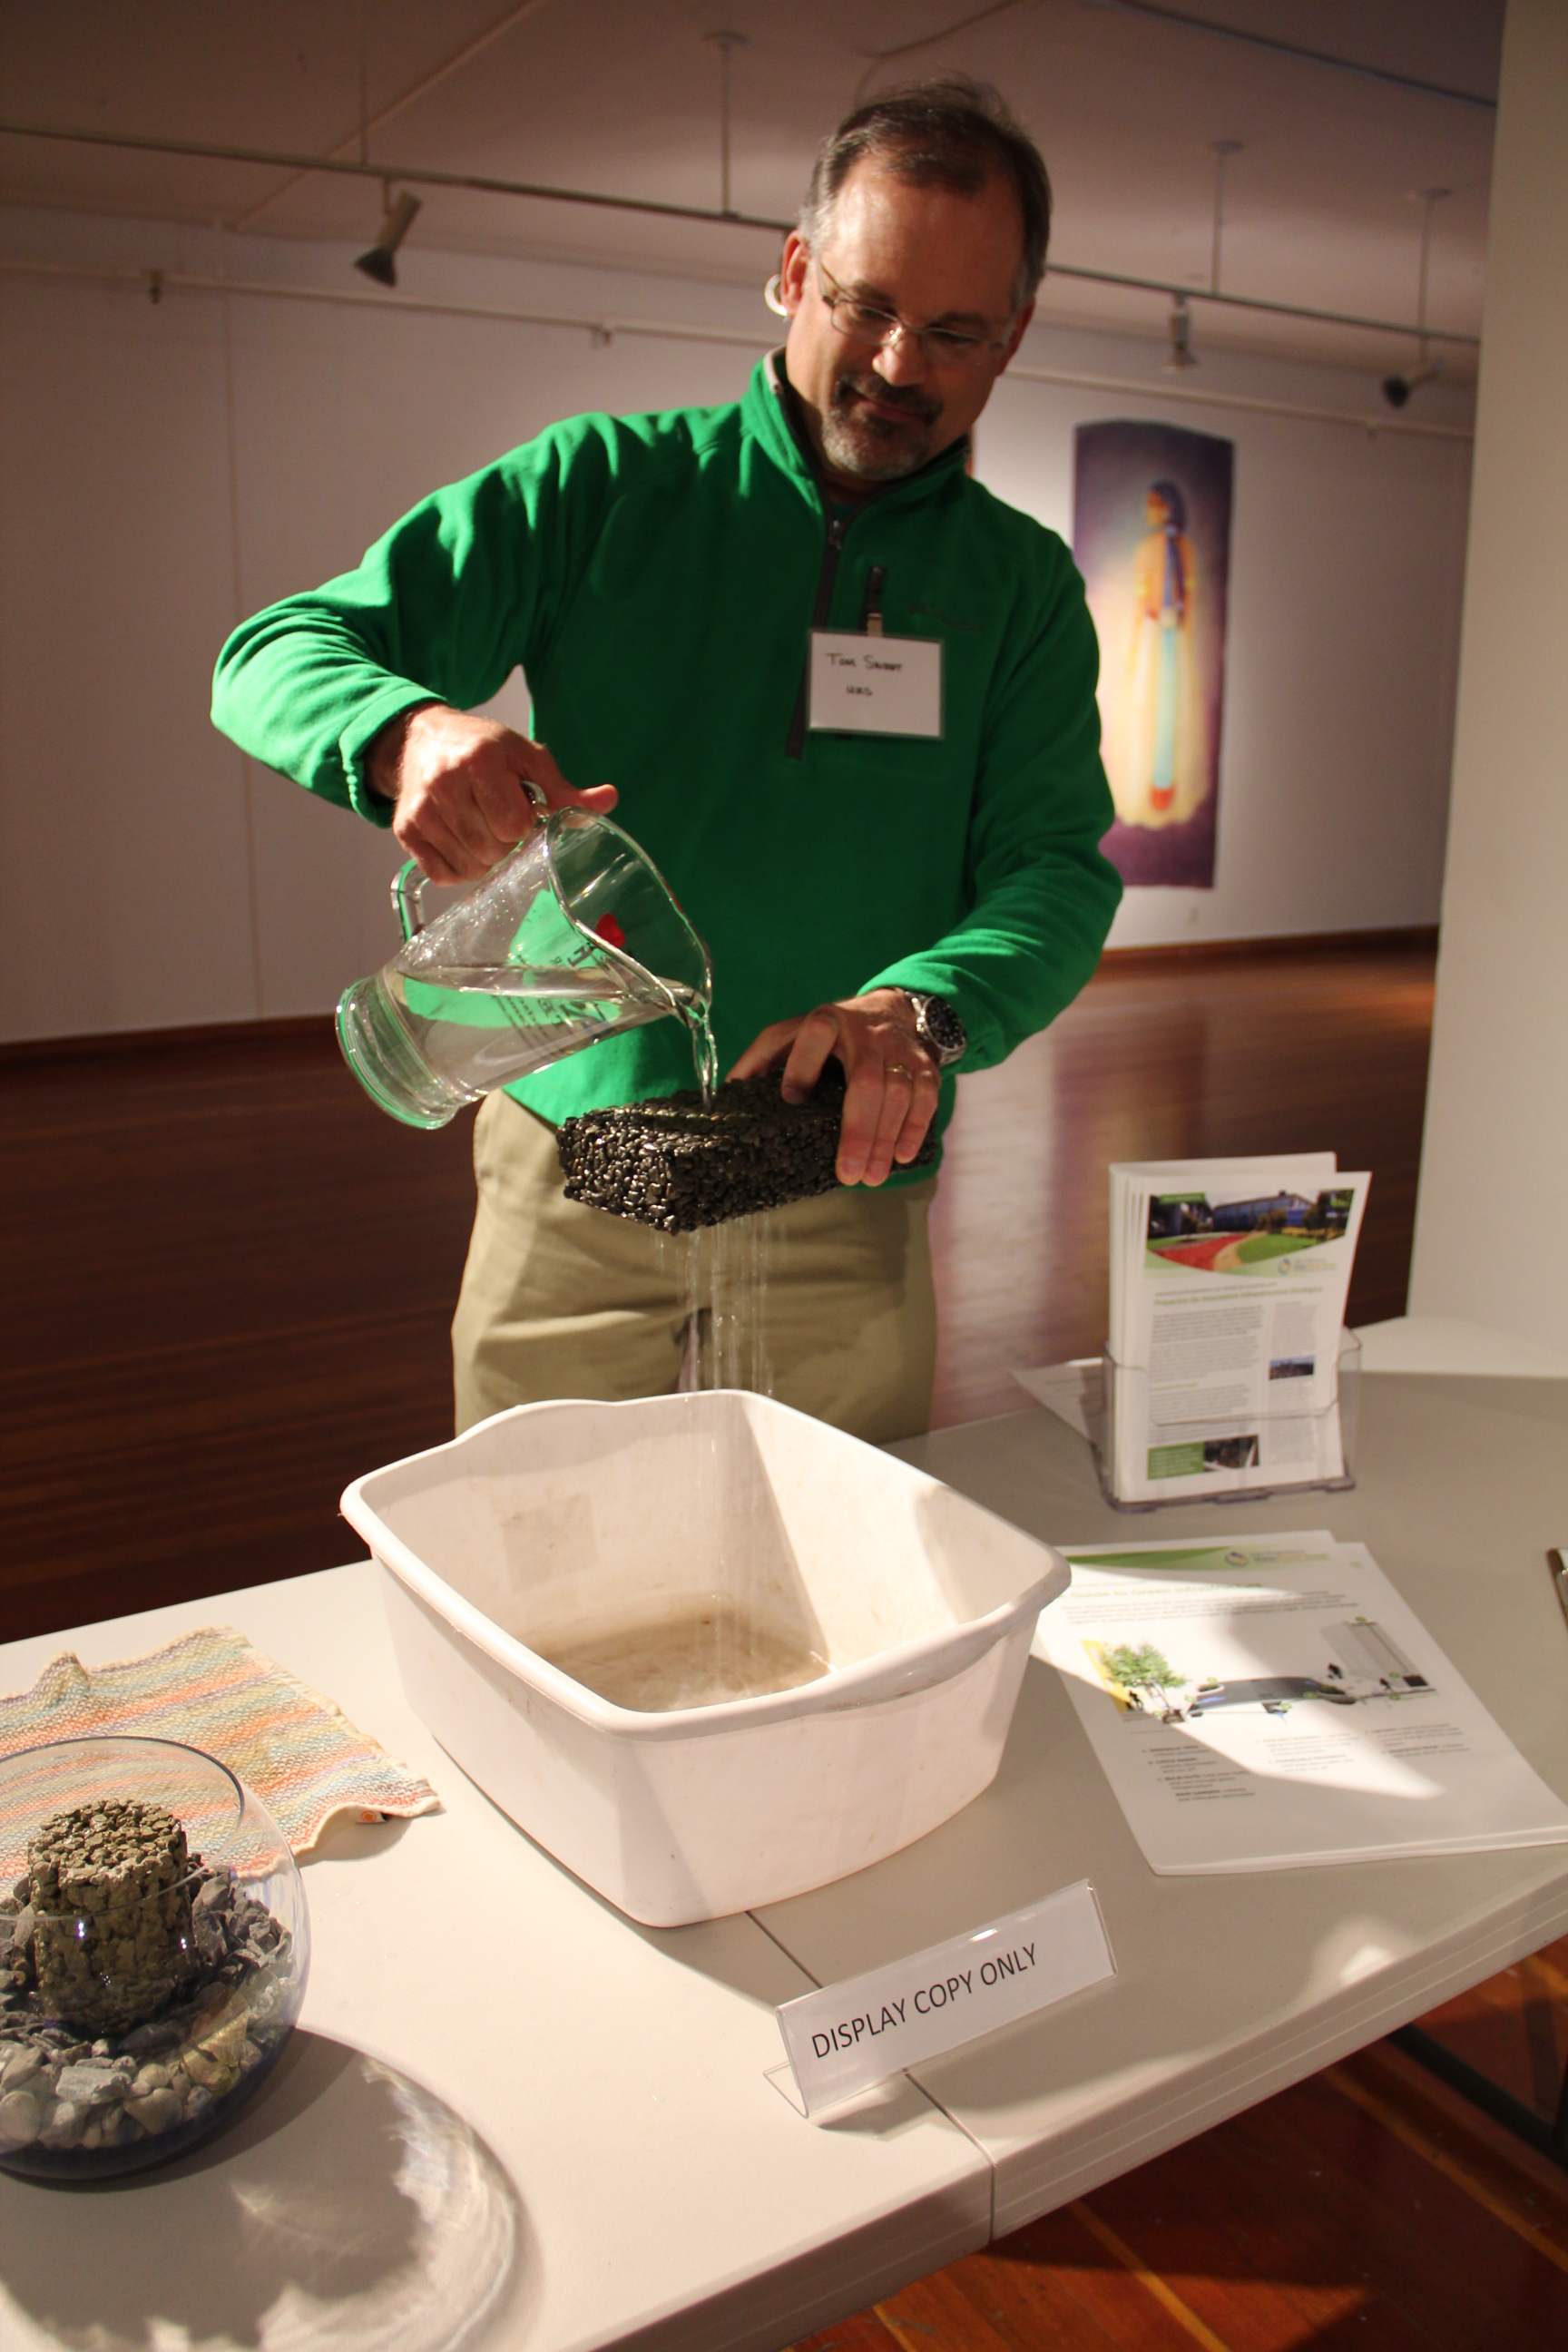 Live demonstrations of green technologies took center stage at last weekend's gathering.